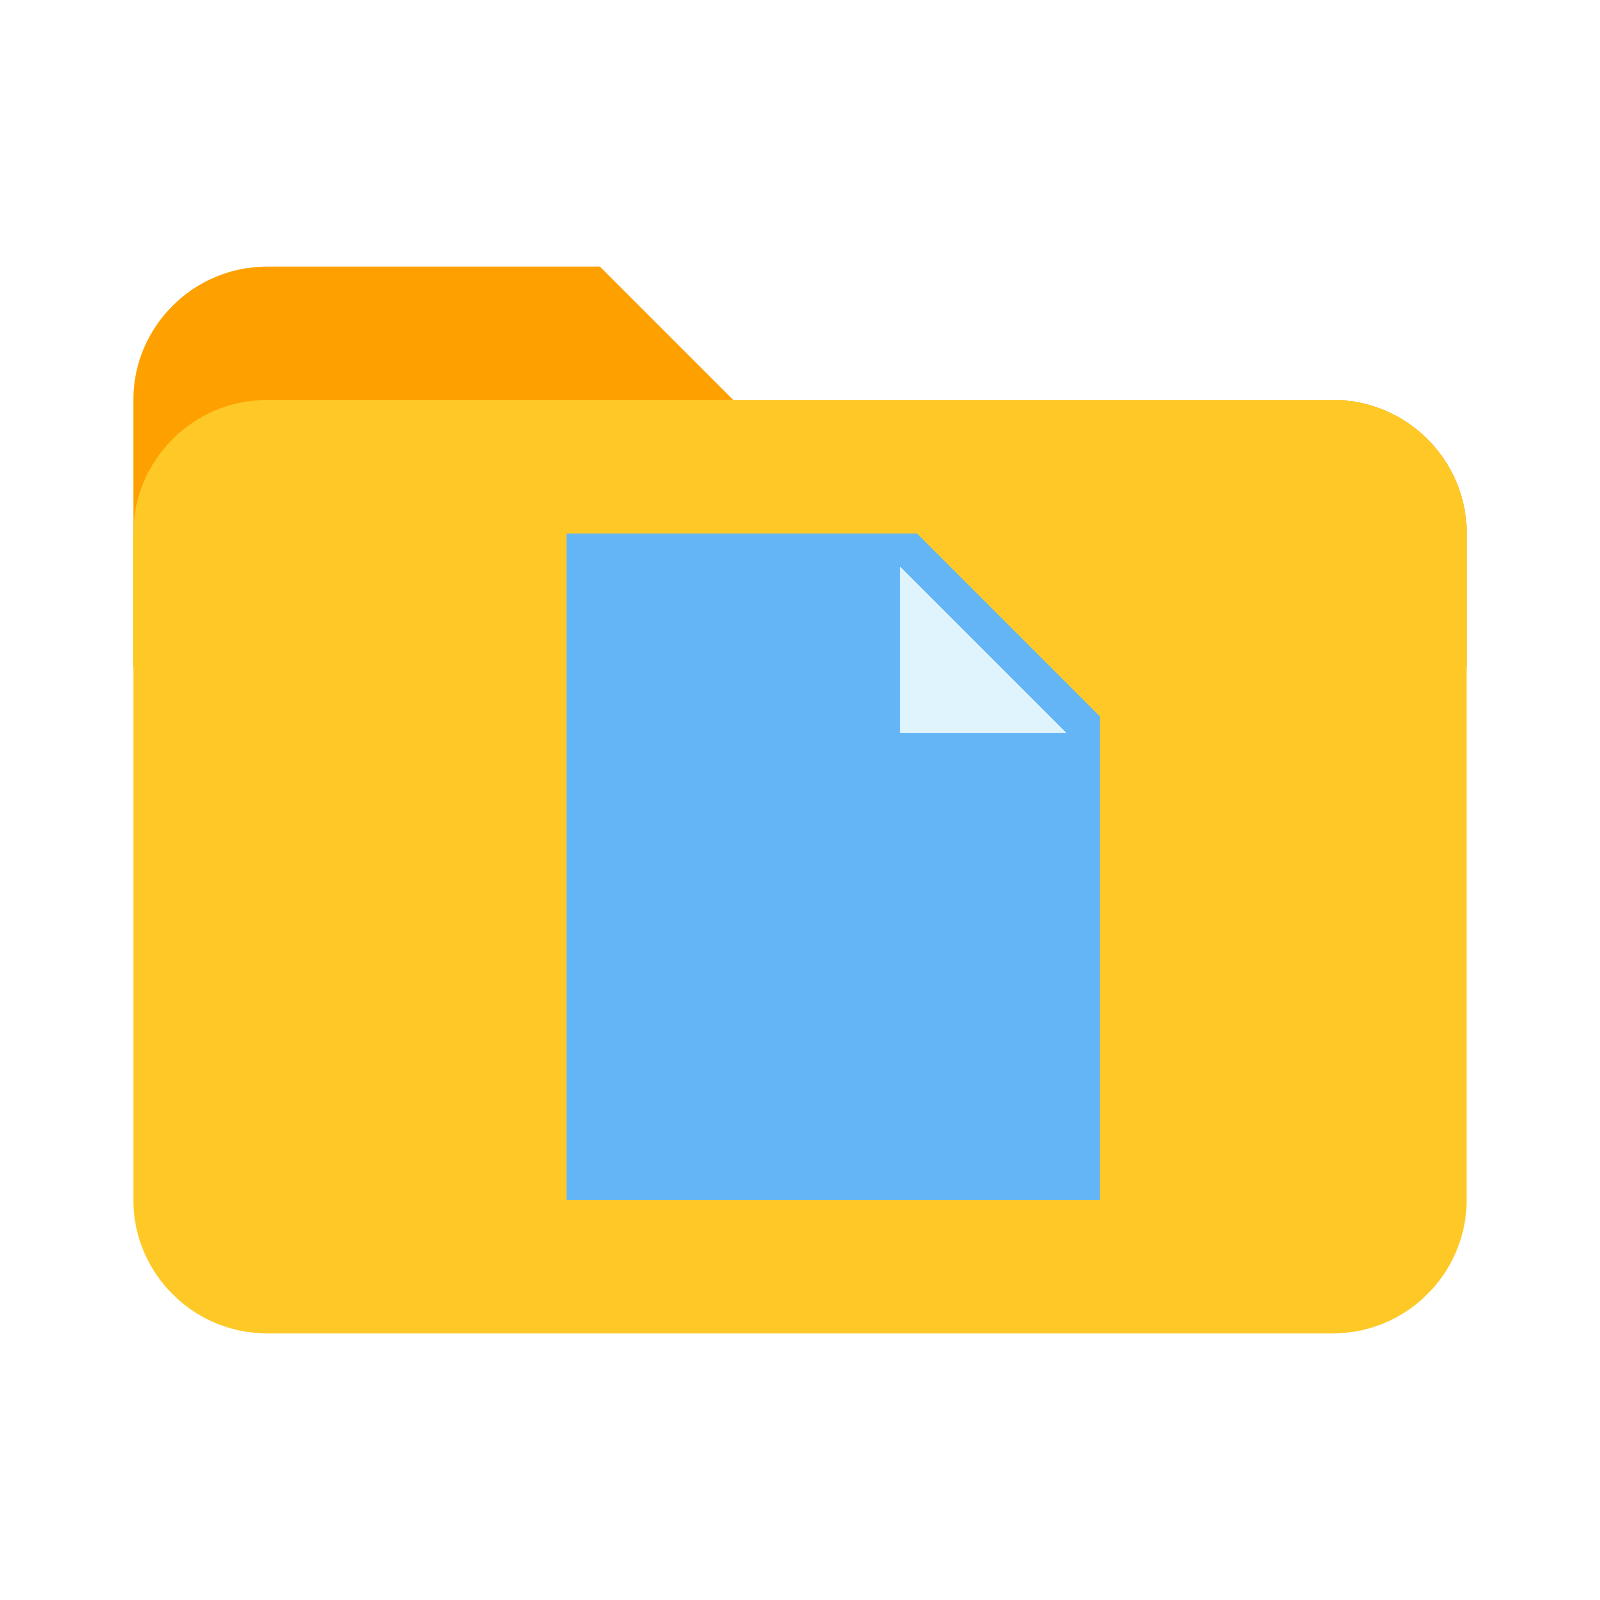 Documents icon free download. Folder clipart flat